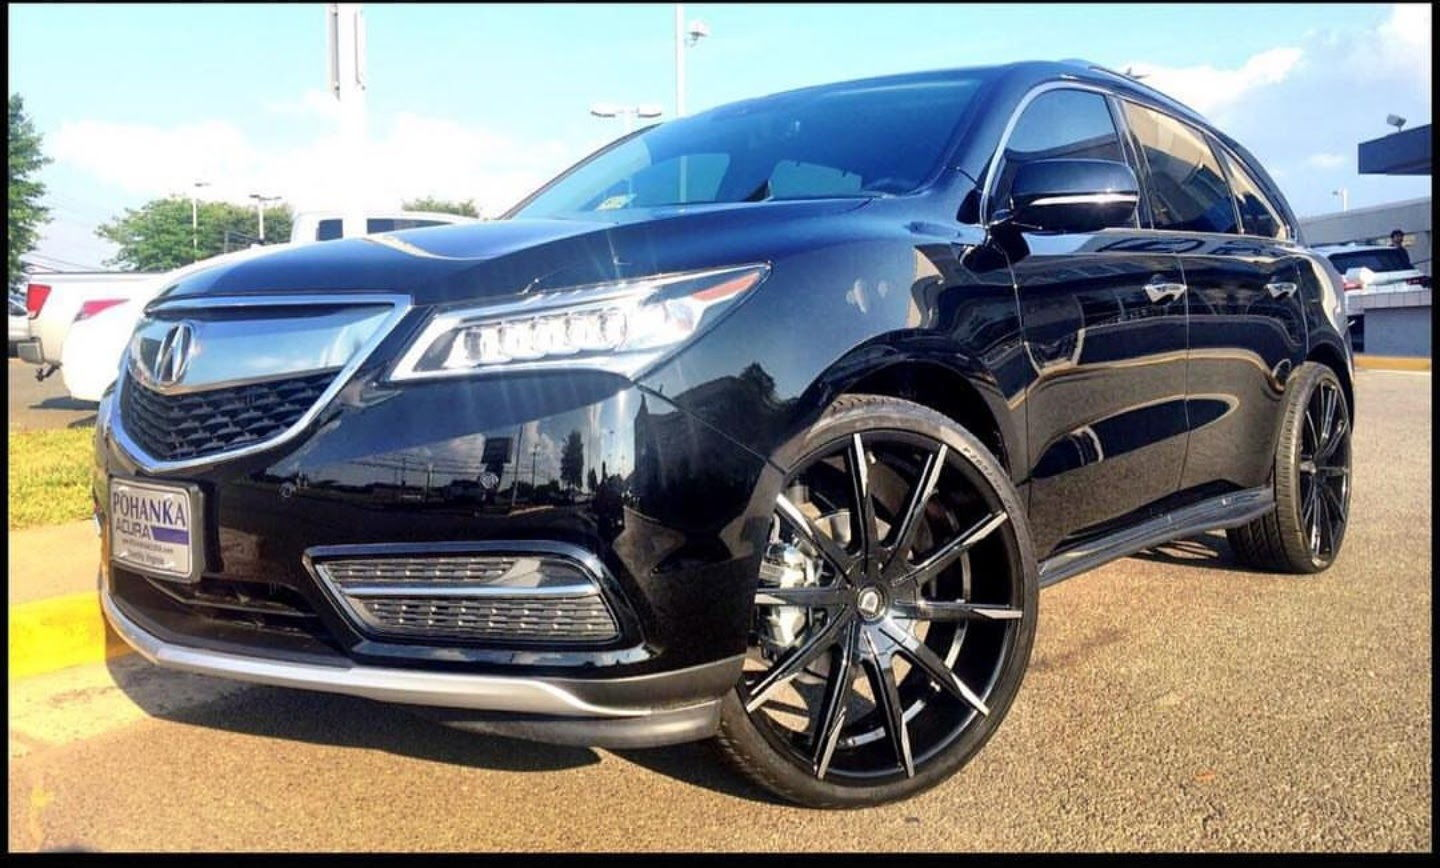 "2016 MDX SH-AWD with 24"" Wheels - AcuraZine - Acura Enthusiast Community"